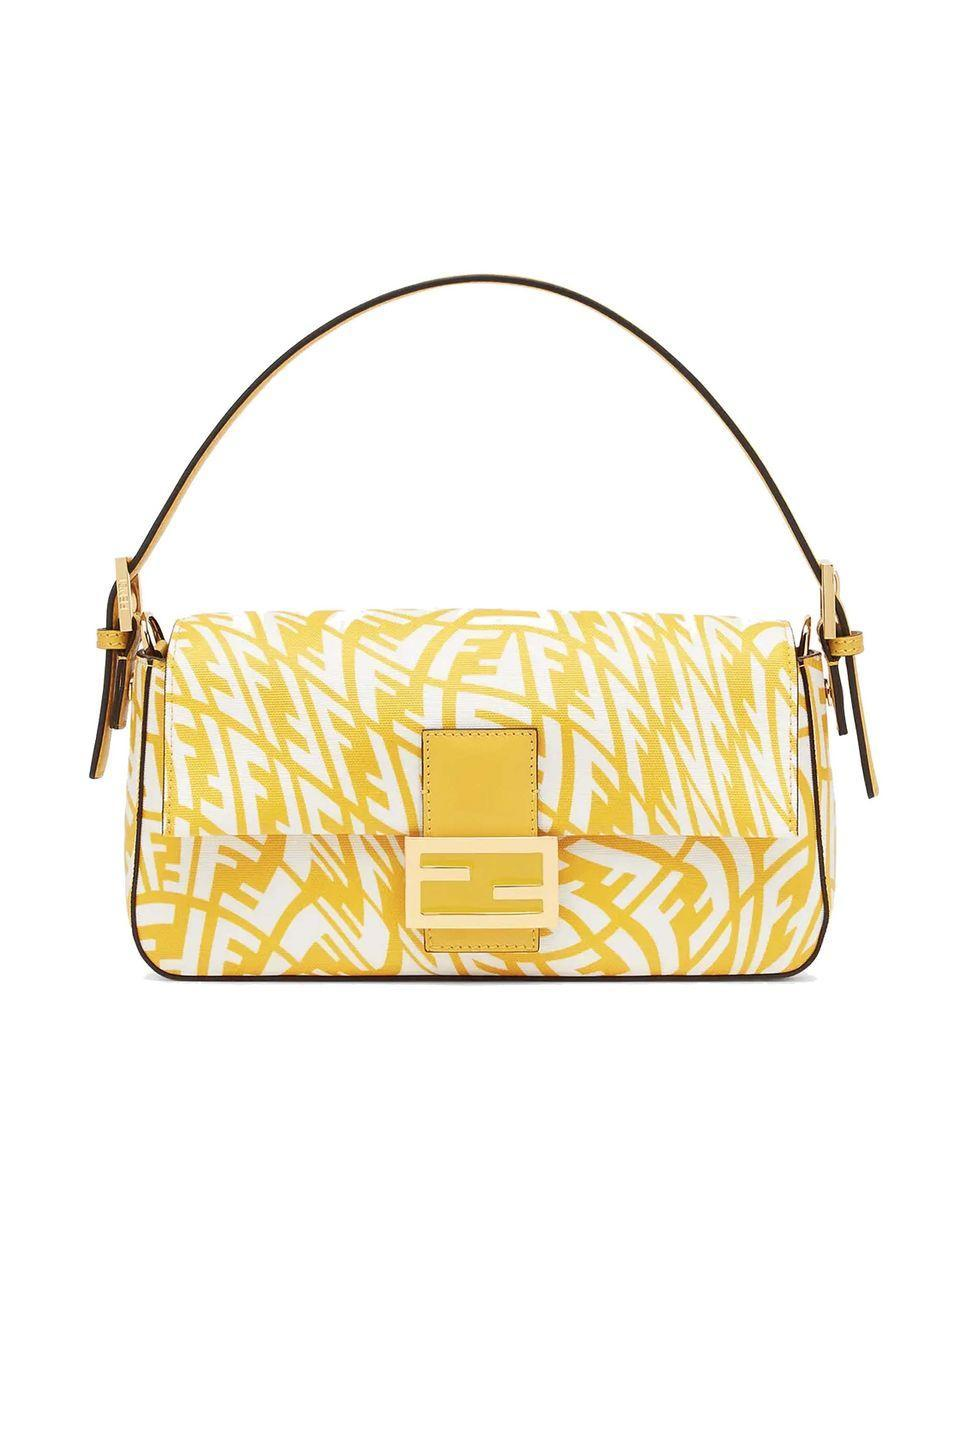 """<p><a class=""""link rapid-noclick-resp"""" href=""""https://www.fendi.com/gb/baguette-1997-yellow-glazed-canvas-bag/p-8br792afl1f1e8k"""" rel=""""nofollow noopener"""" target=""""_blank"""" data-ylk=""""slk:SHOP NOW"""">SHOP NOW</a></p><p>The Baguette is one of Fendi's most well-known handbags. Named after the French loaf, the accessory is small and simple and can be tucked delicately under the arm. Over the years the bag has been updated and transformed in many ways – <a href=""""https://www.fendi.com/gb/woman-bags/baguette"""" rel=""""nofollow noopener"""" target=""""_blank"""" data-ylk=""""slk:and the house has recently re-issued some of the styles first released in 1997"""" class=""""link rapid-noclick-resp"""">and the house has recently re-issued some of the styles first released in 1997</a> (including this fun yellow design), all of which will definitely stand the test of time.</p><p>Jacquard and raffia bag, £1,850, <a href=""""https://www.fendi.com/gb/baguette-1997-yellow-glazed-canvas-bag/p-8br792afl1f1e8k"""" rel=""""nofollow noopener"""" target=""""_blank"""" data-ylk=""""slk:Fendi"""" class=""""link rapid-noclick-resp"""">Fendi</a></p>"""